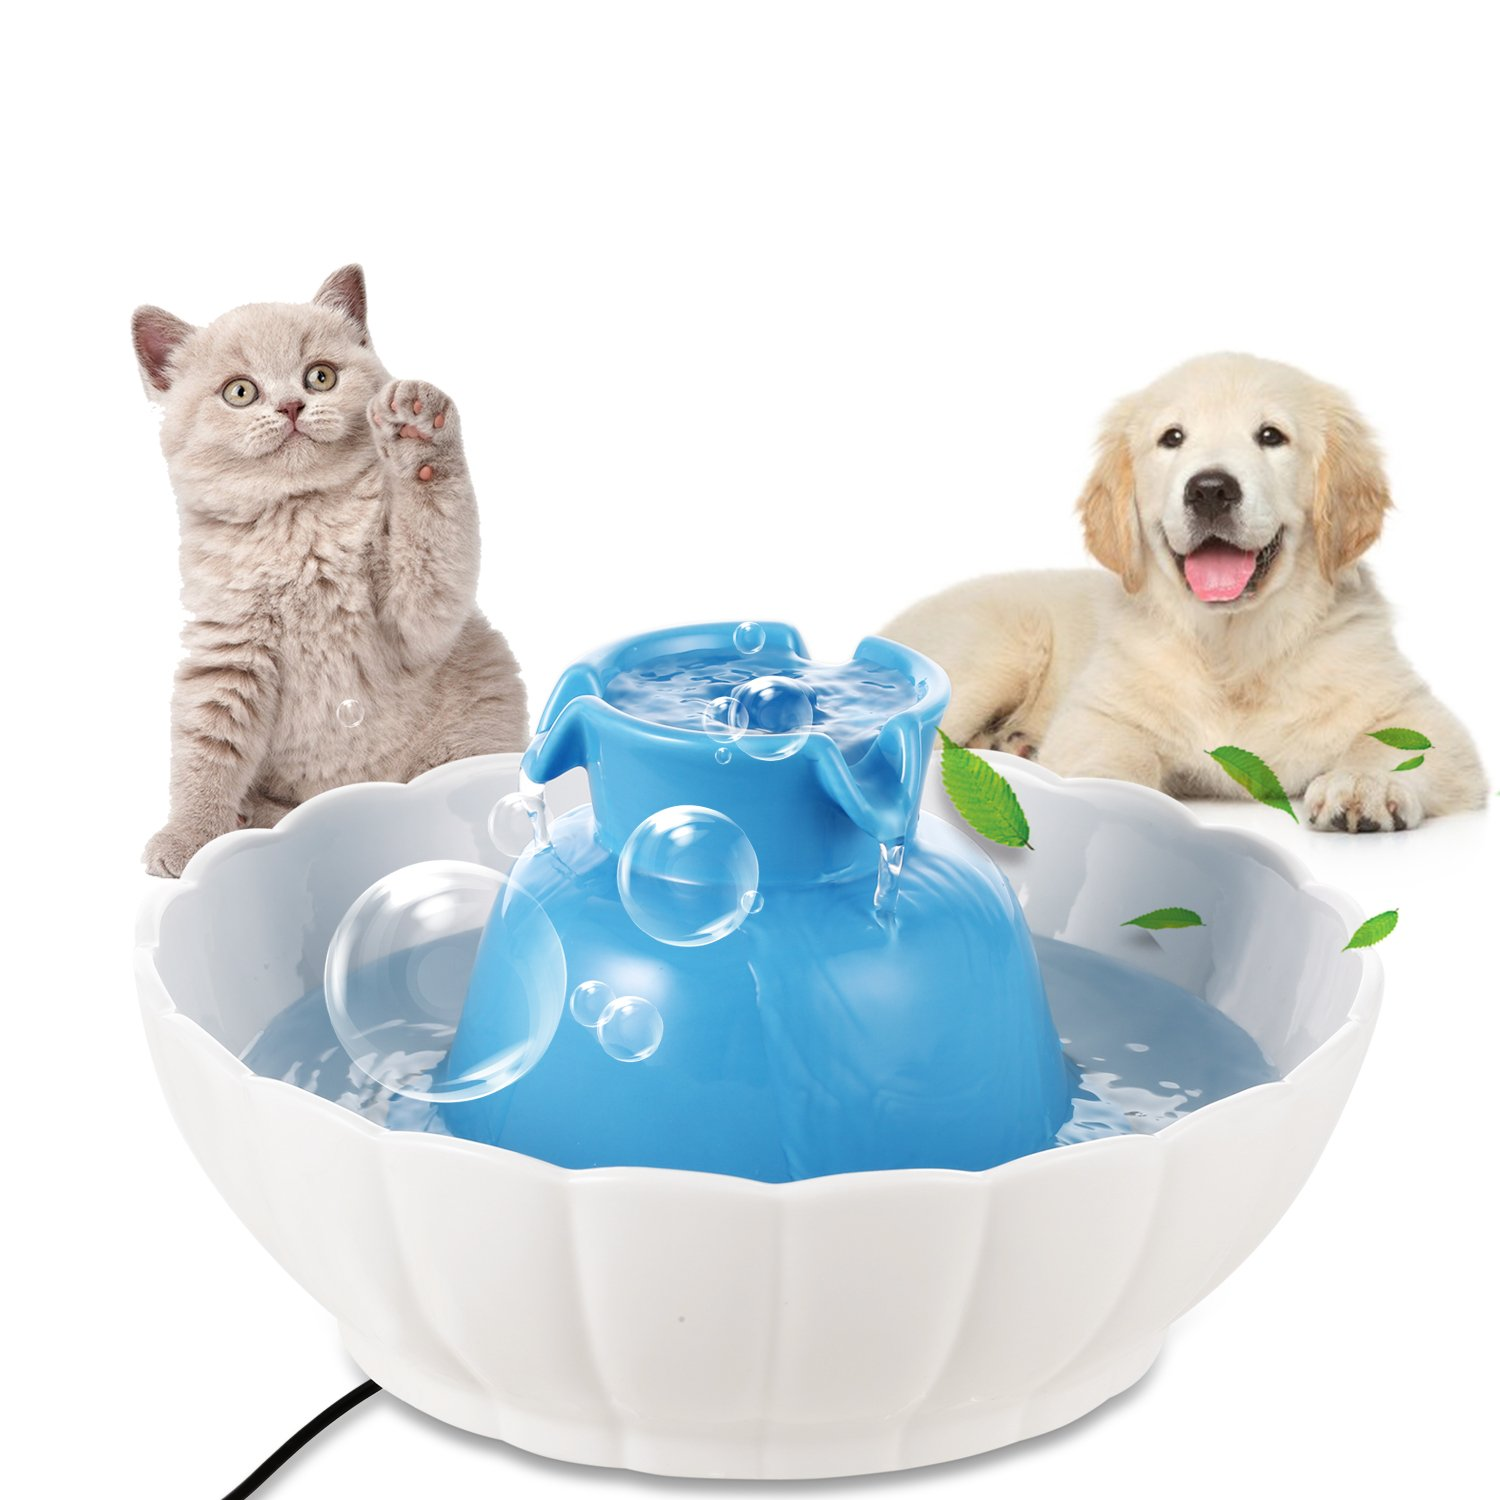 Homdox Pets Ceramic Drinking Fountain Pet Feeder Automatic Cat Feeder Automatic water Fountain for Dogs Cats (Pet Fountain)